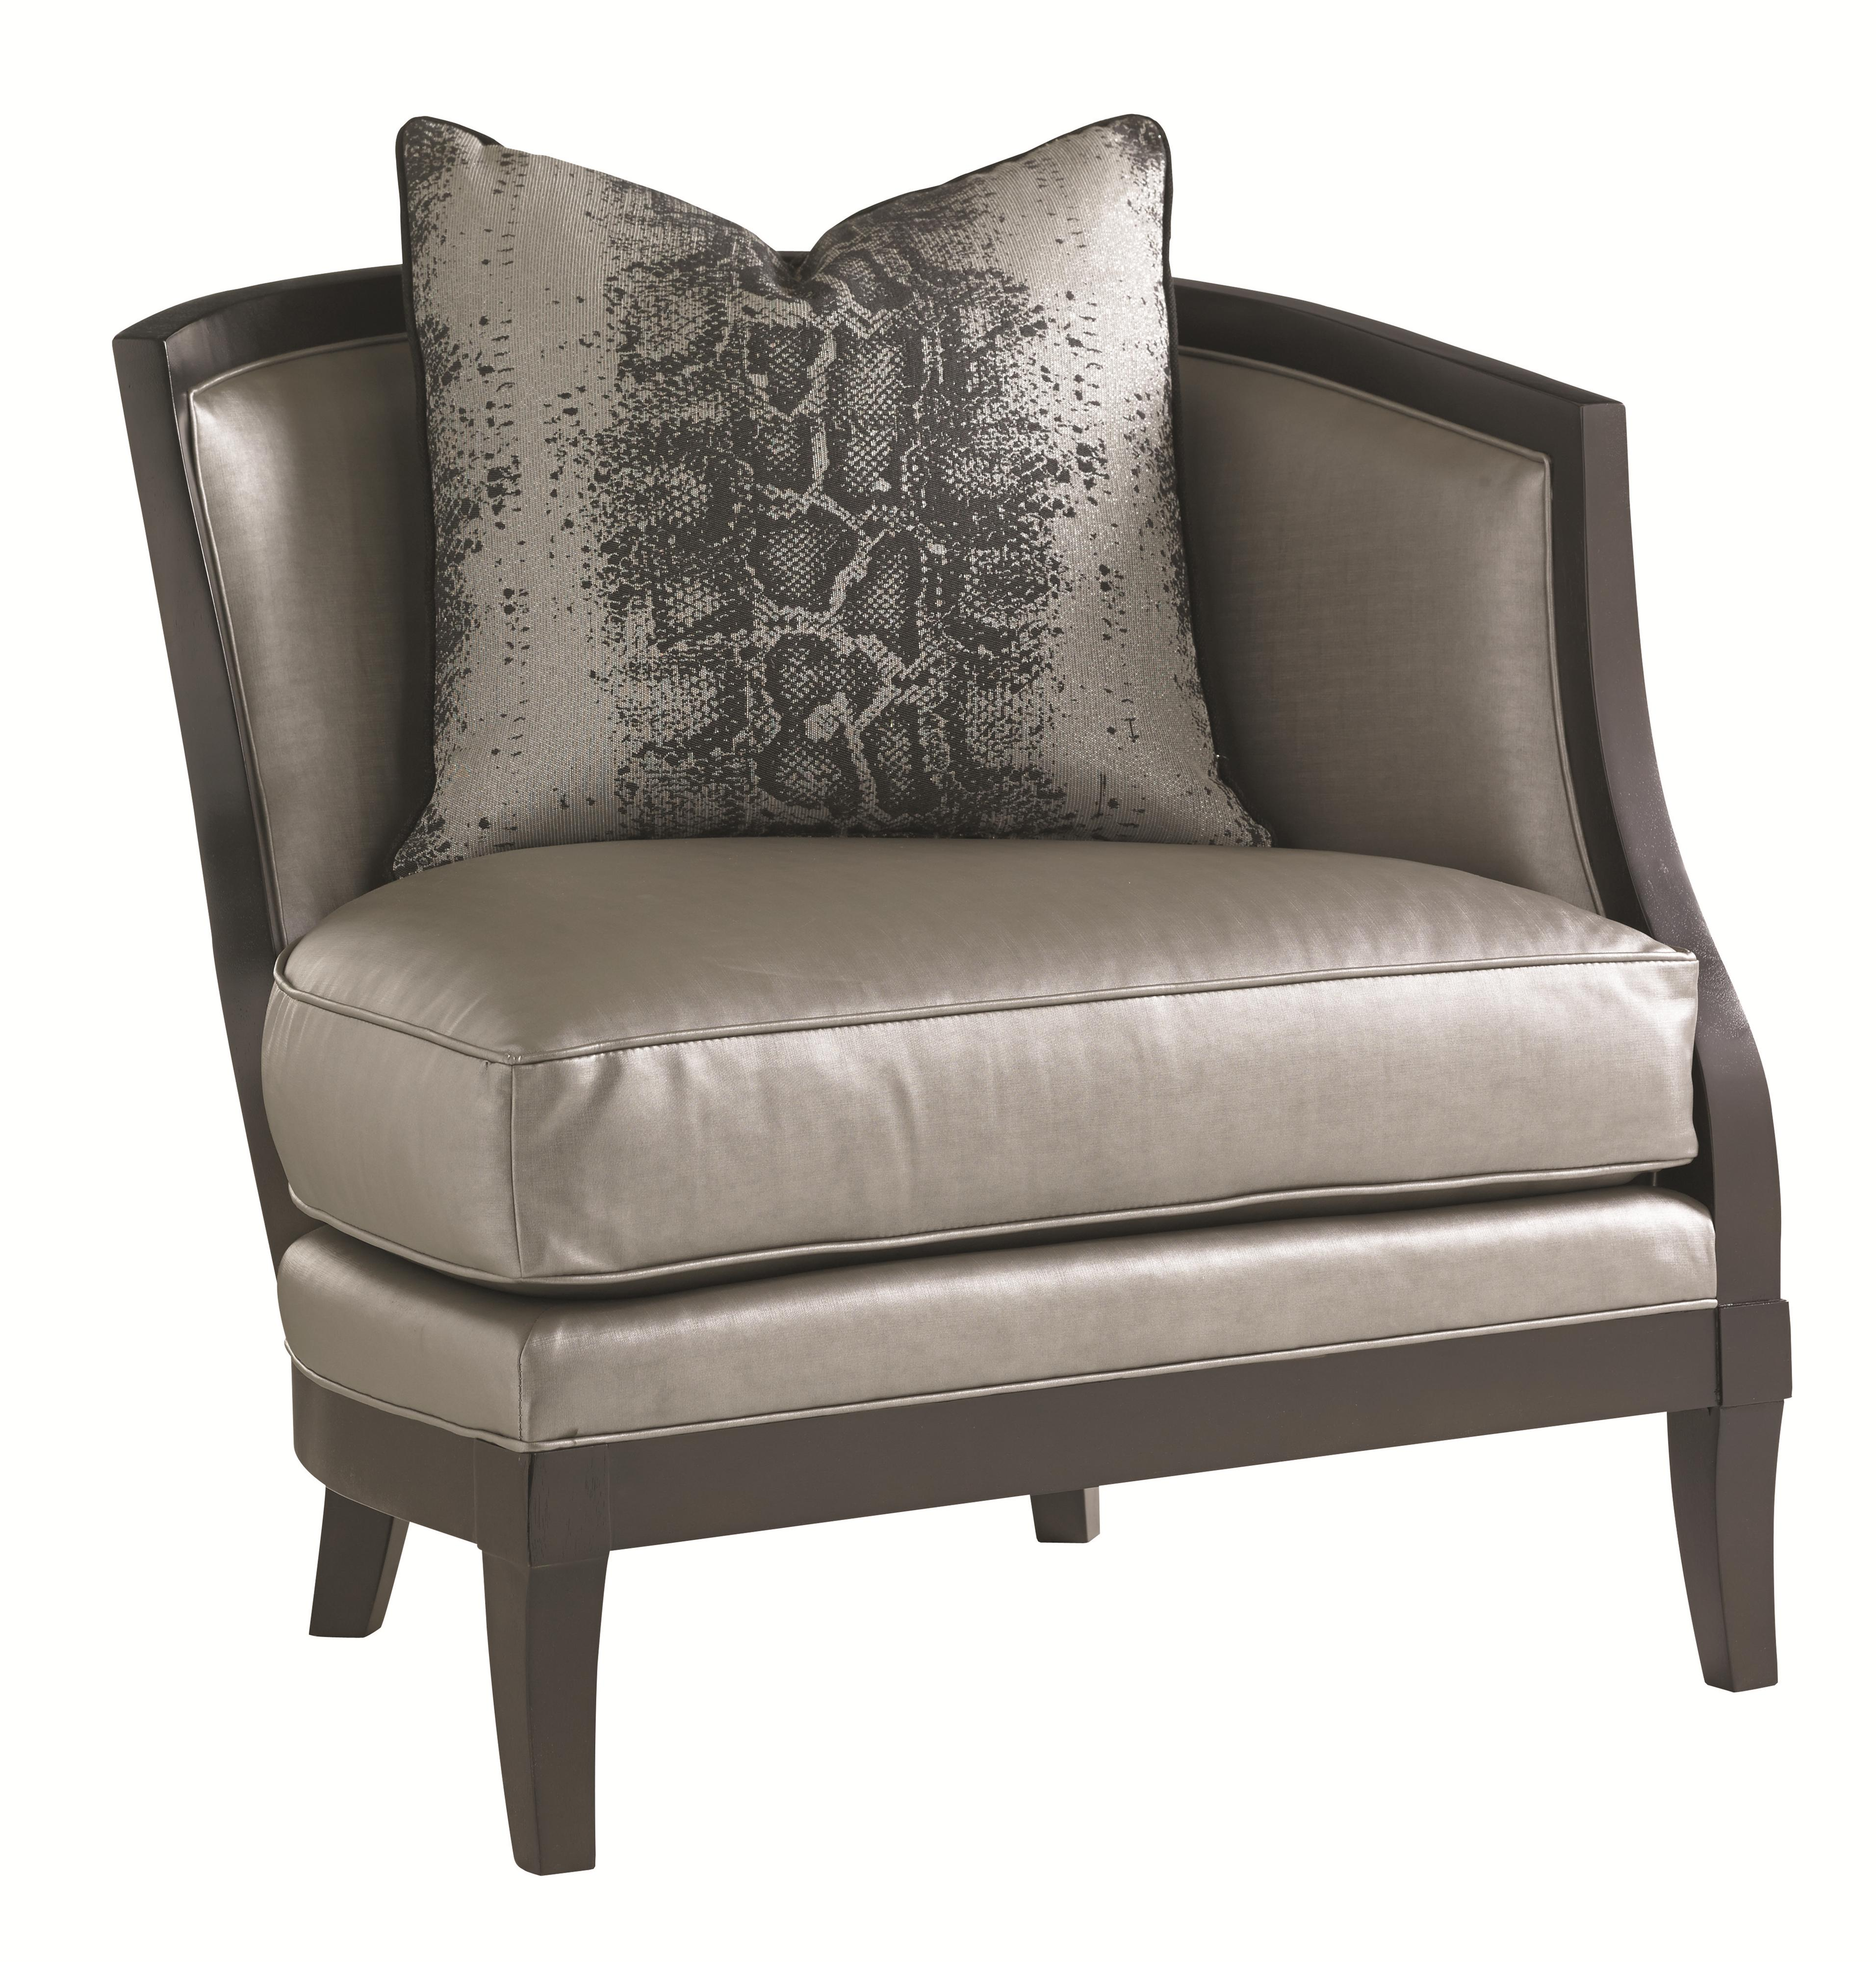 Upholstery Garland Right Arm Facing Chair by Lexington at Baer's Furniture